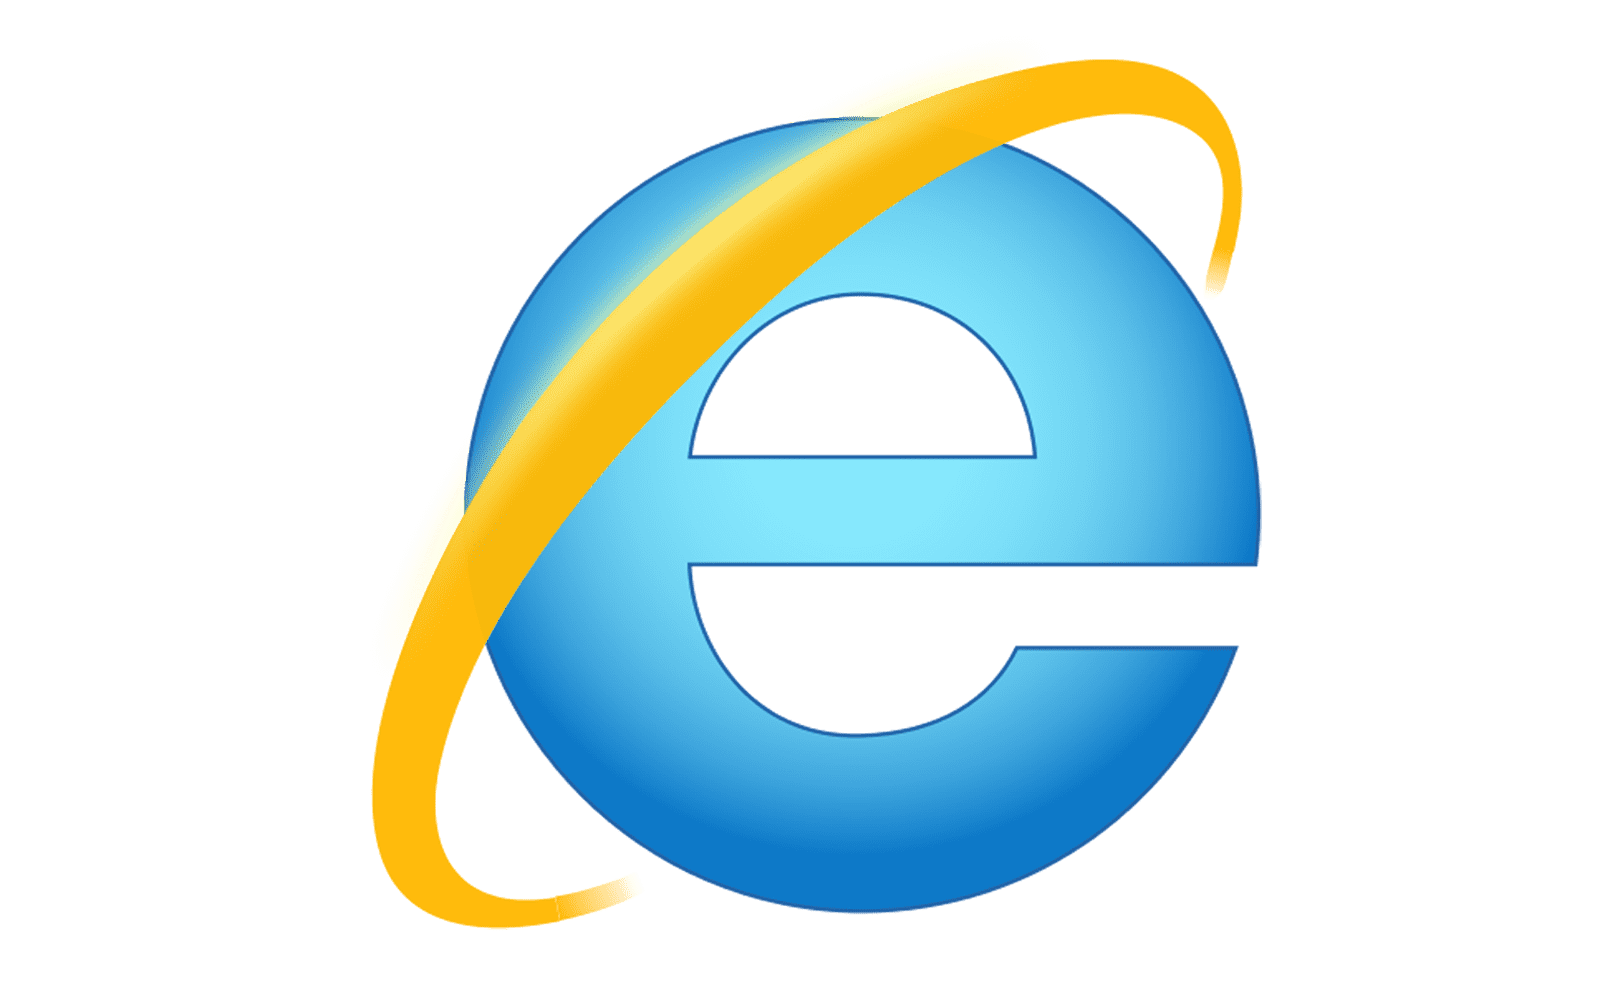 Internet Explorer logo and symbol, meaning, history, PNG